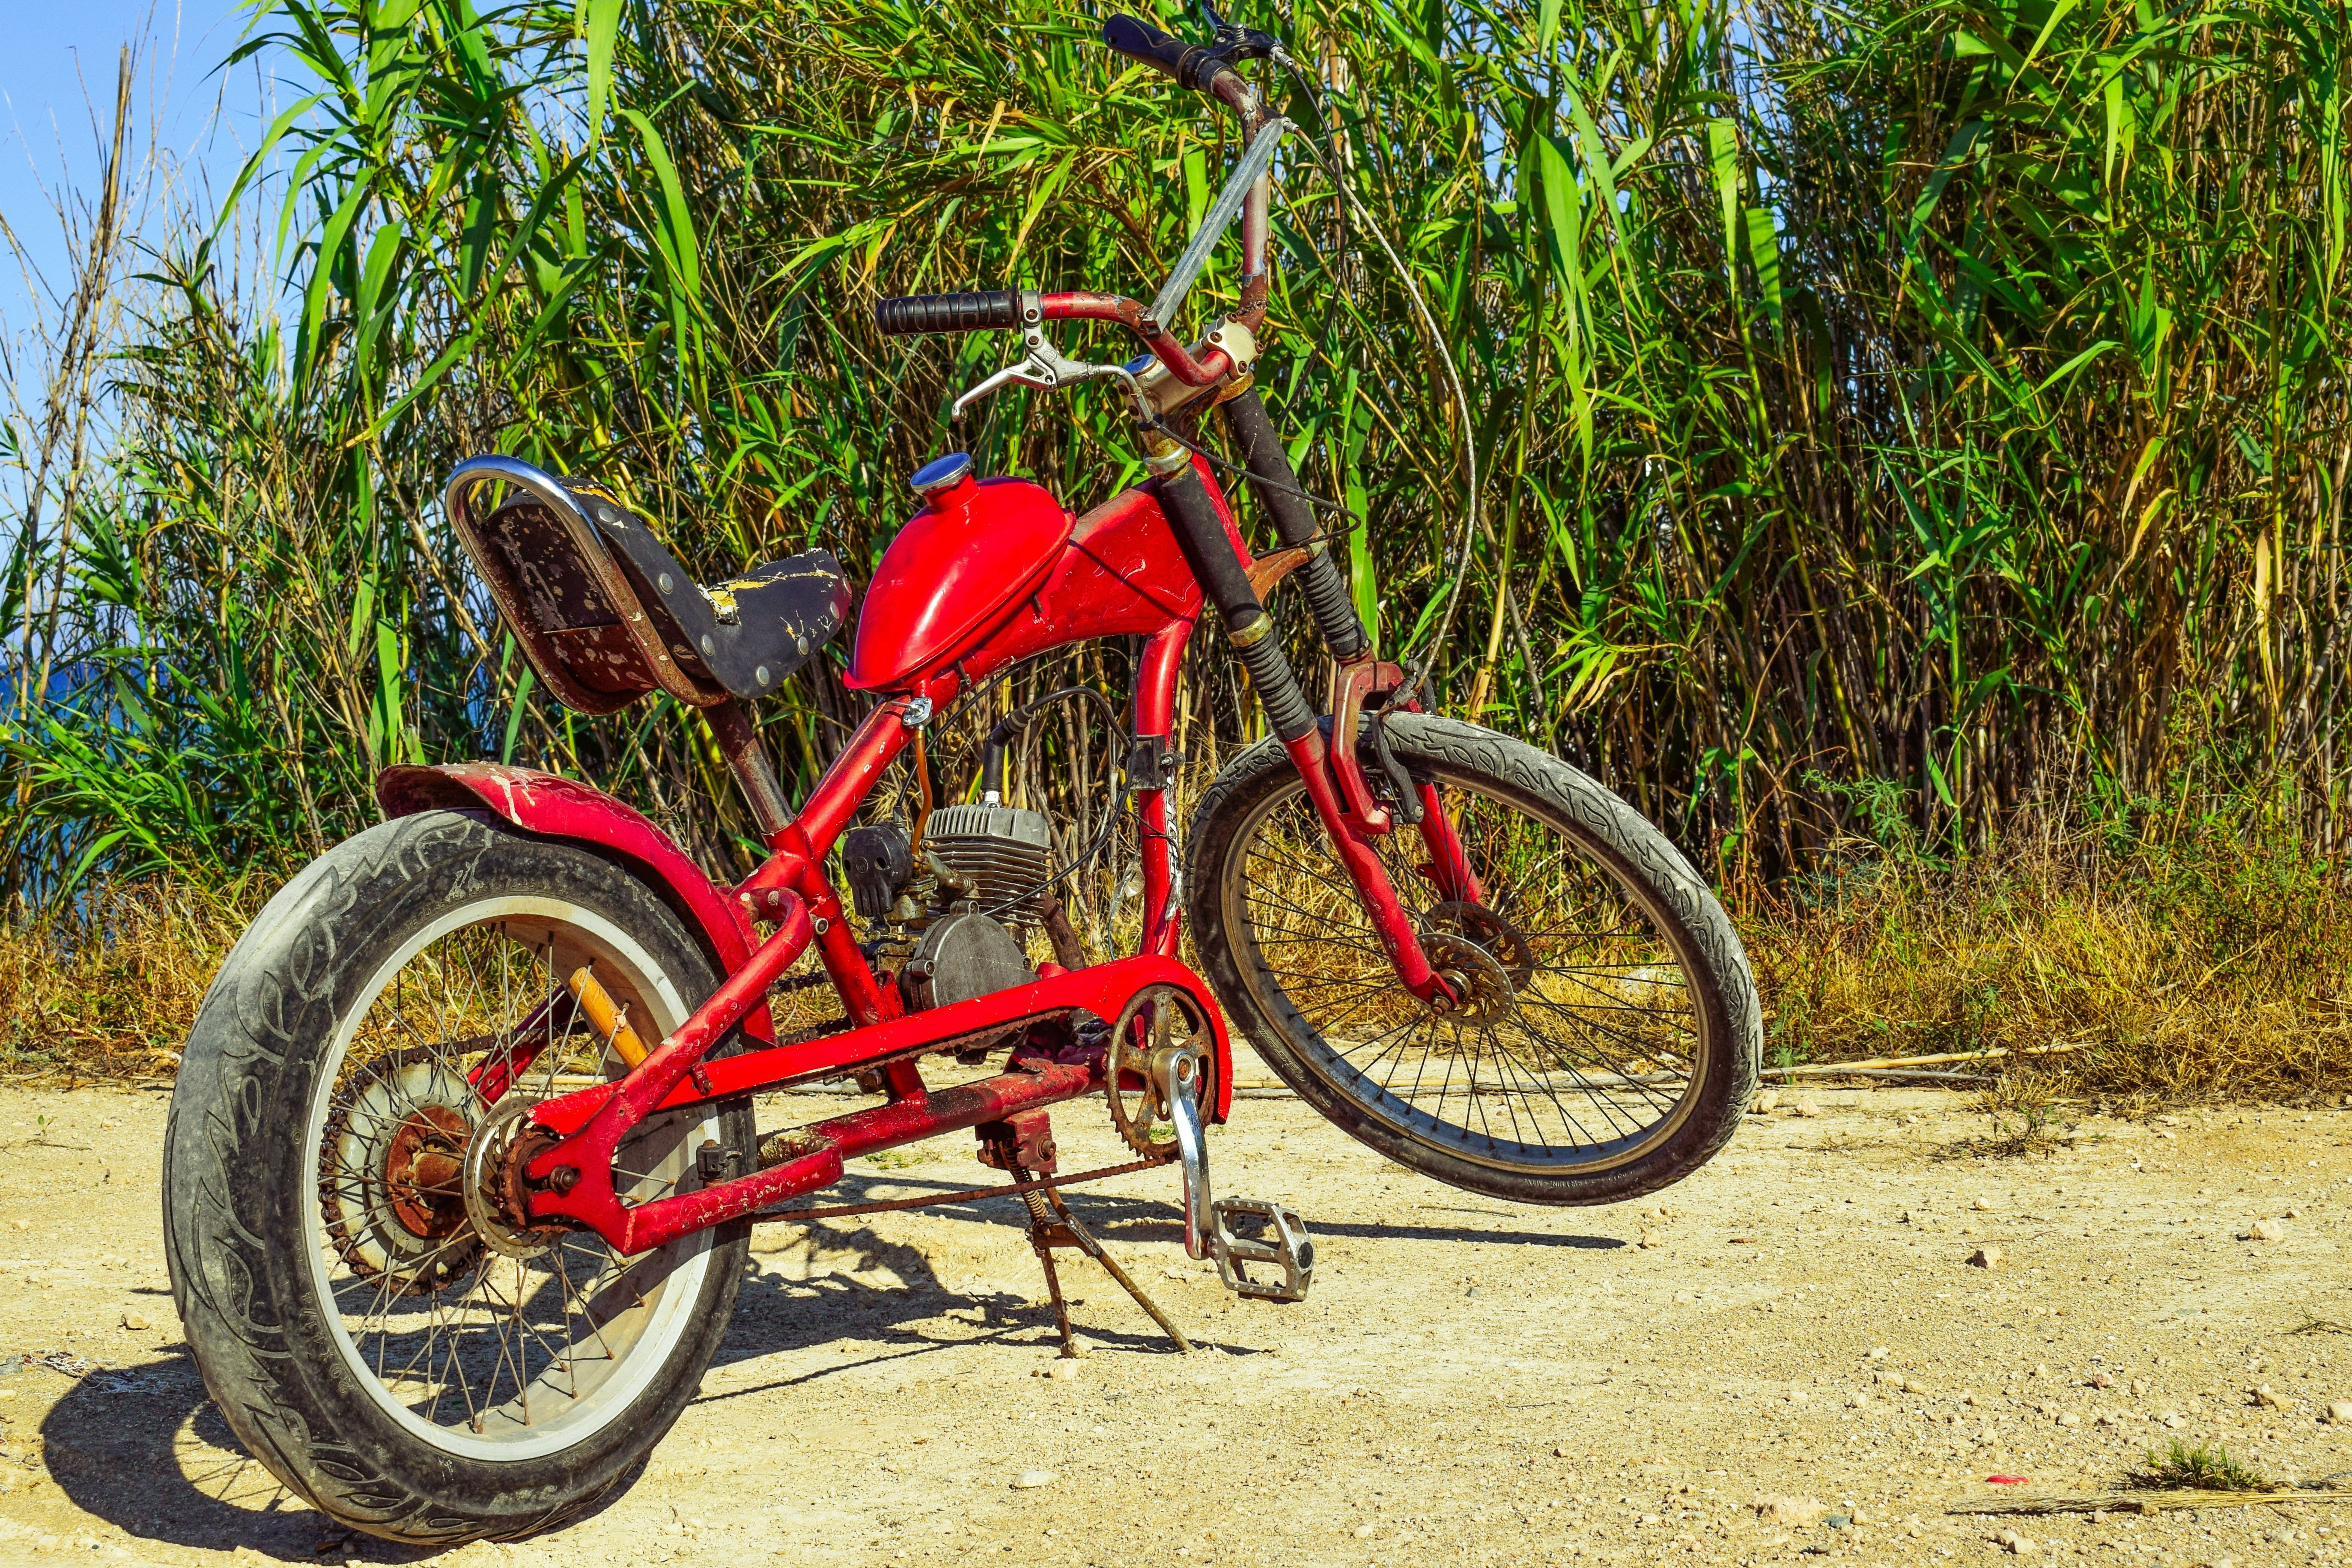 Free stock photo of red, countryside, vehicle, motorbike